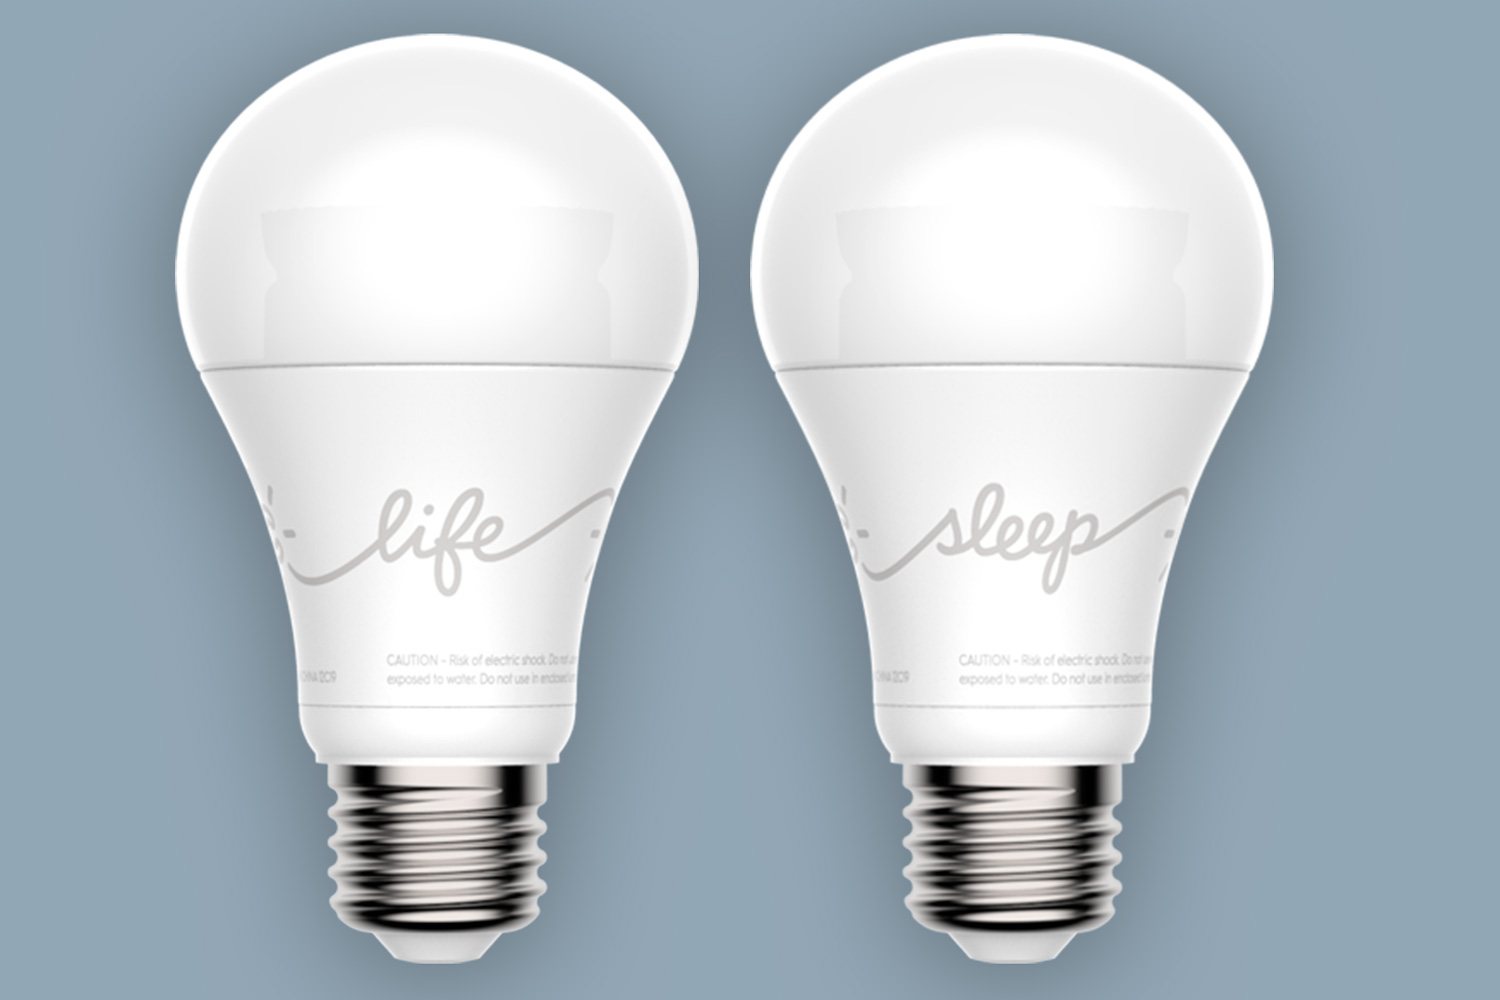 Need better sleep ge 39 s new smart led light bulbs adjust with your circadian rhythm A light bulb